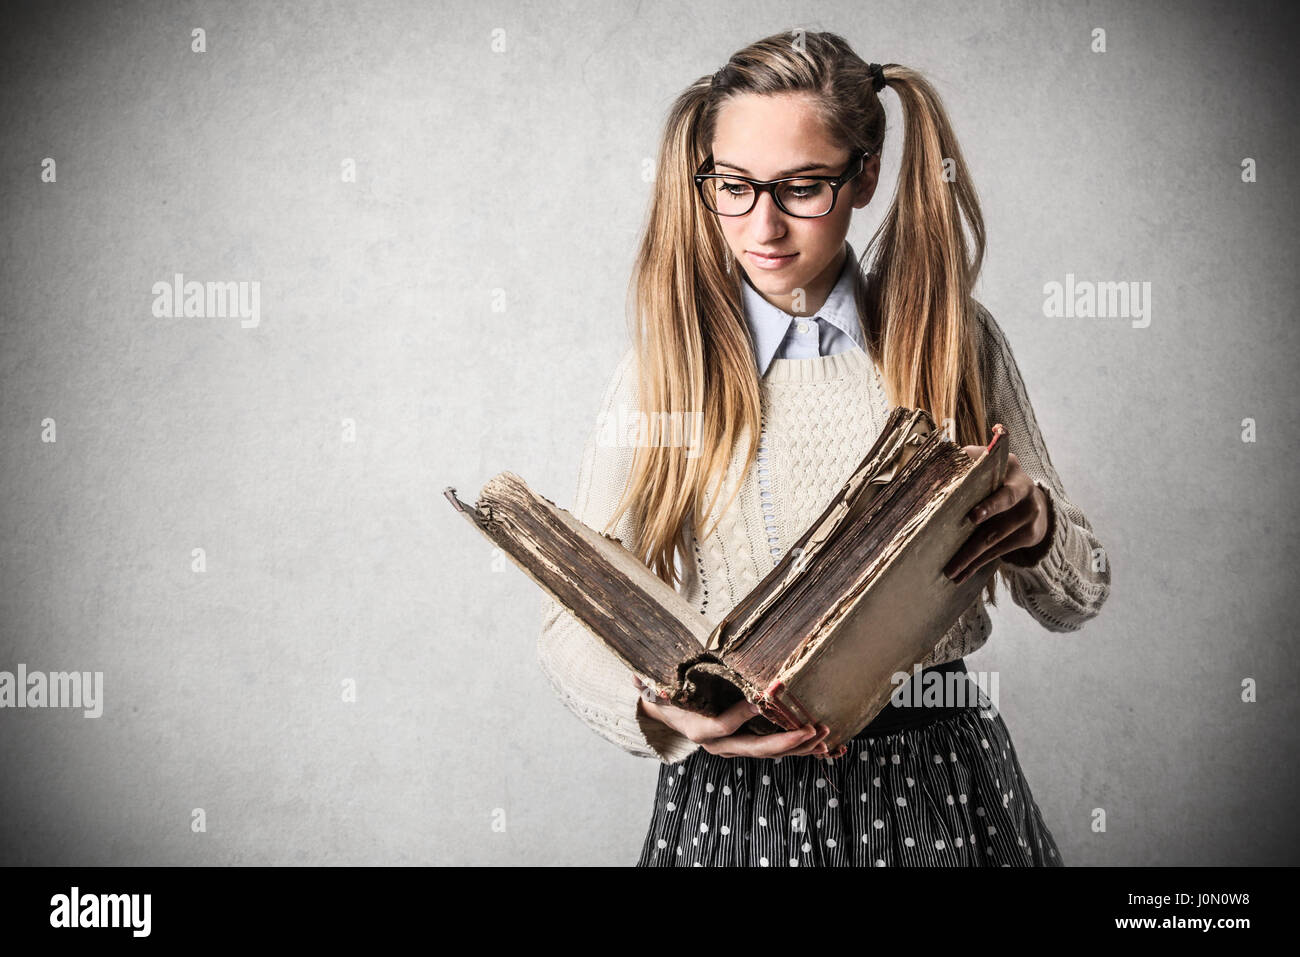 Young woman studying from book - Stock Image